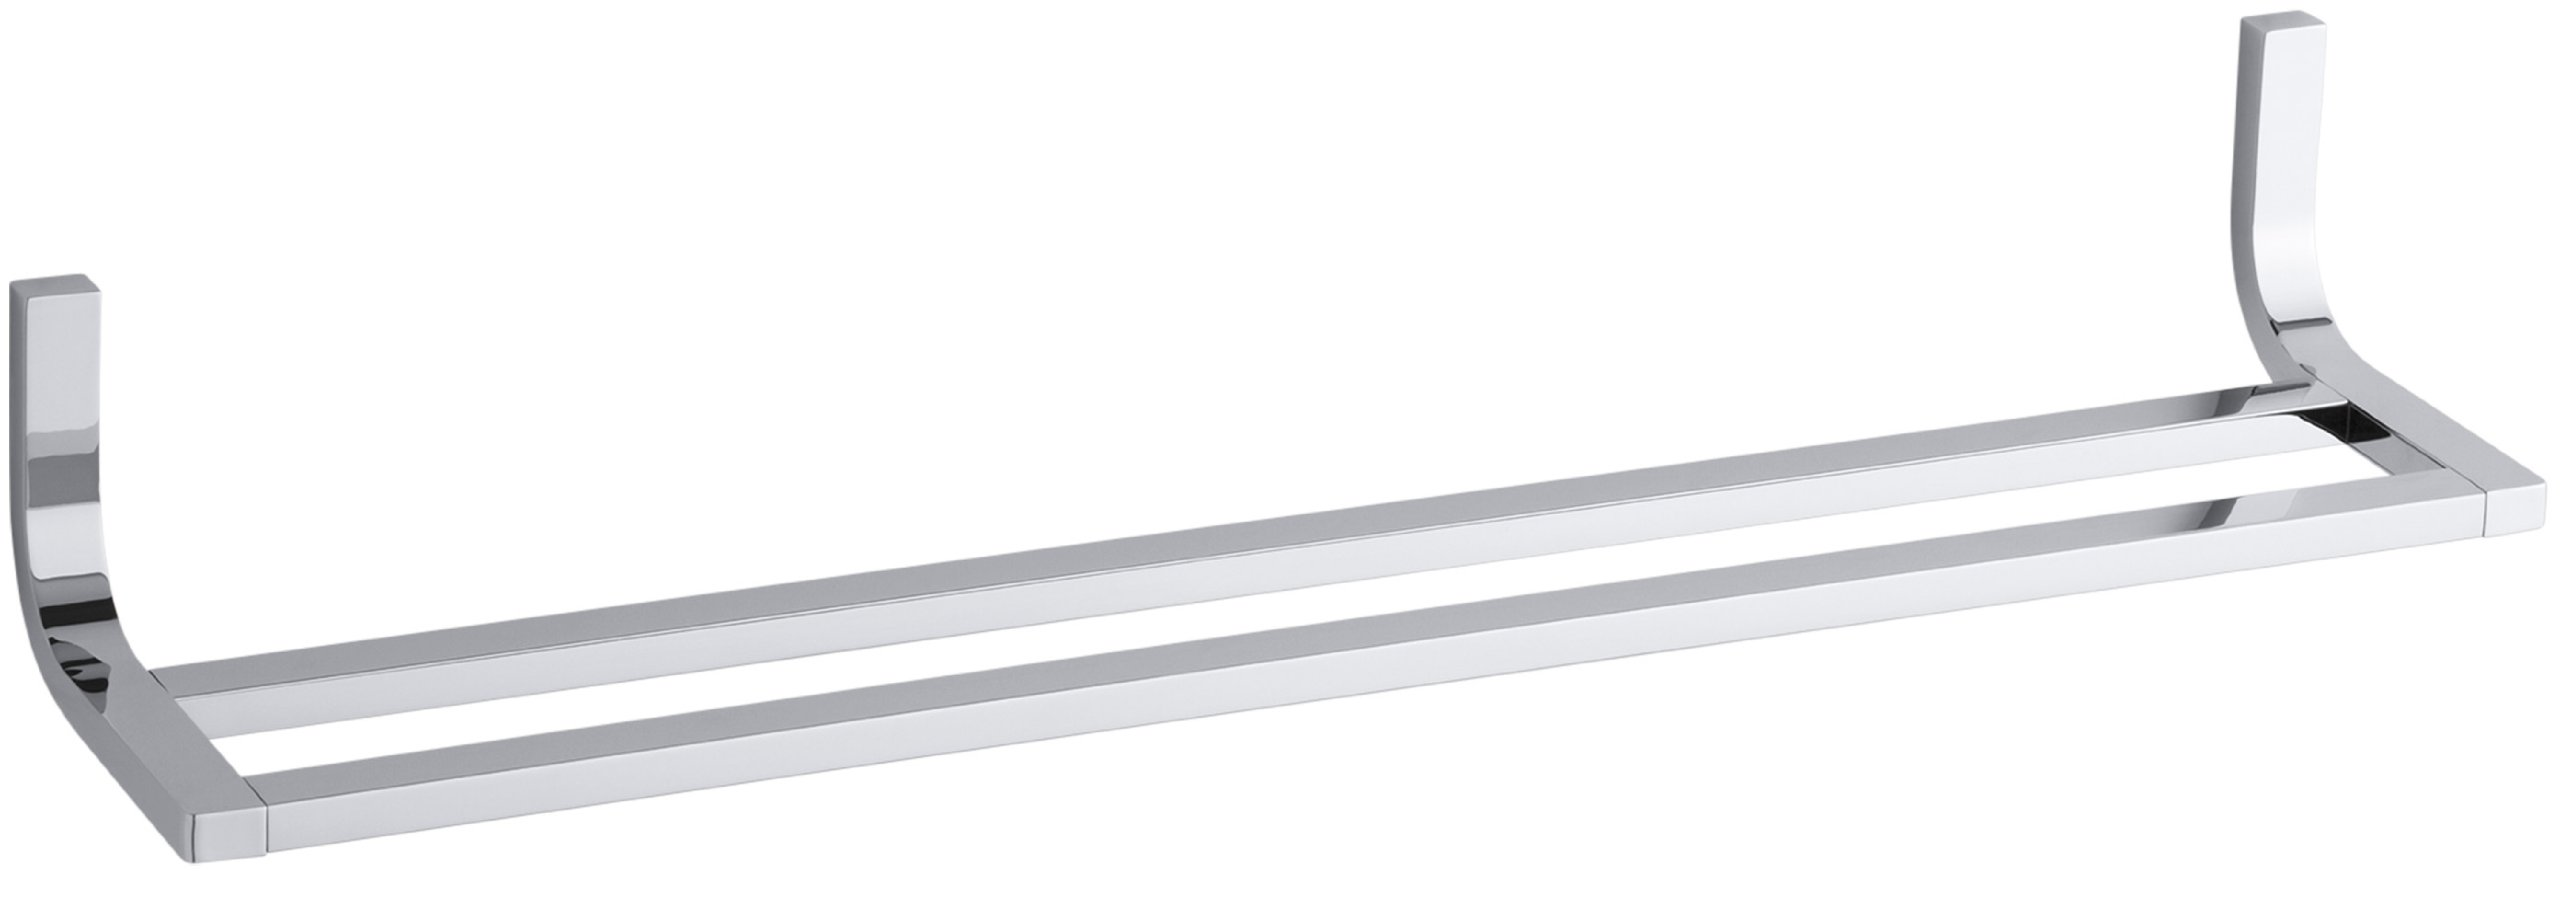 Kohler K-11582-CP Loure 24-Inch Double Towel Bar, Polished Chrome